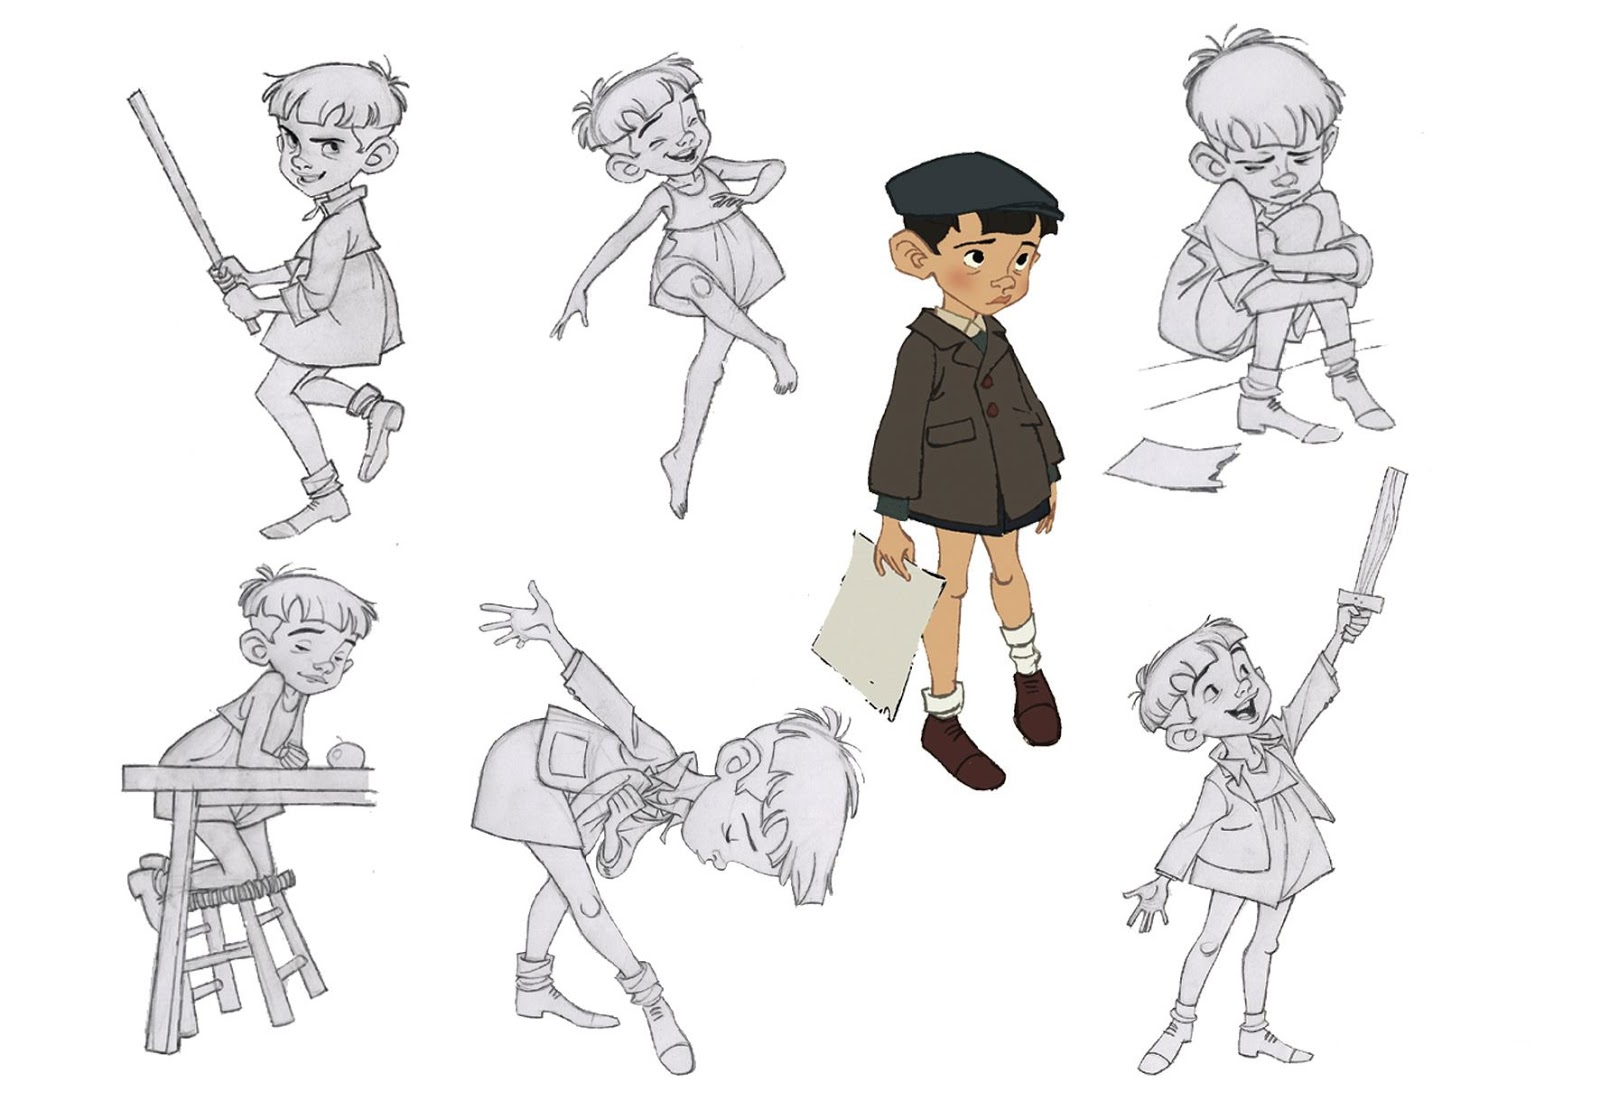 Character Design Little Boy : Borja montoro interview